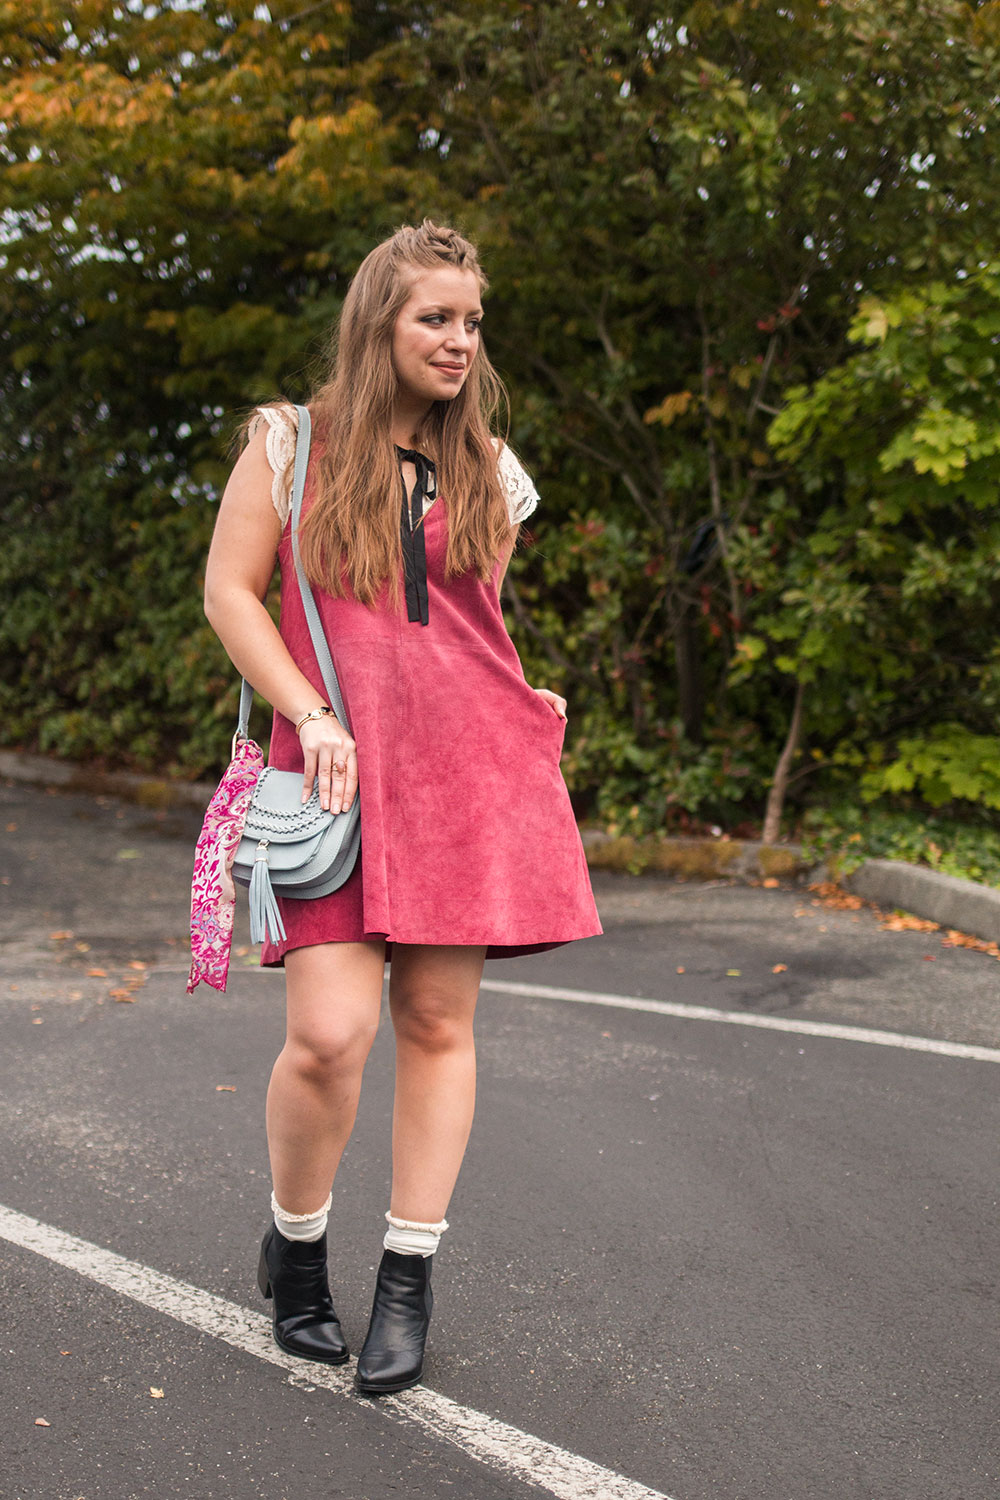 How to Wear Suede Dress Outfit // Hello Rigby Seattle Fashion Blog